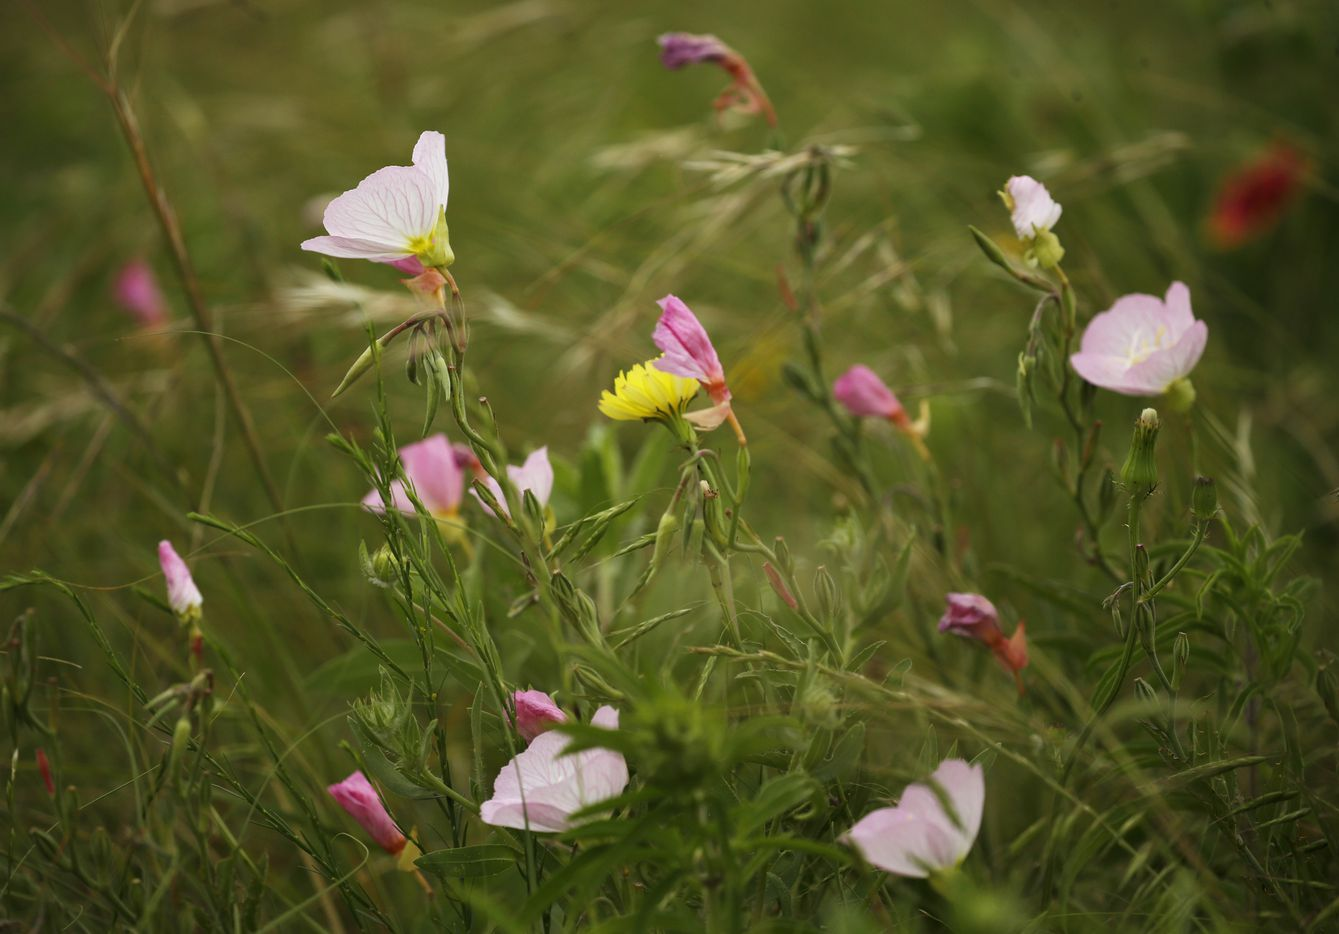 Wildflowers — evening primrose — are seen along the course on the East Course designed by Gil Hanse at PGA Frisco in Frisco, Texas, on Wednesday, May 20, 2020. The $520 million project is a mixed-use development that will be home to the PGA of America headquarters and two championship golf courses.